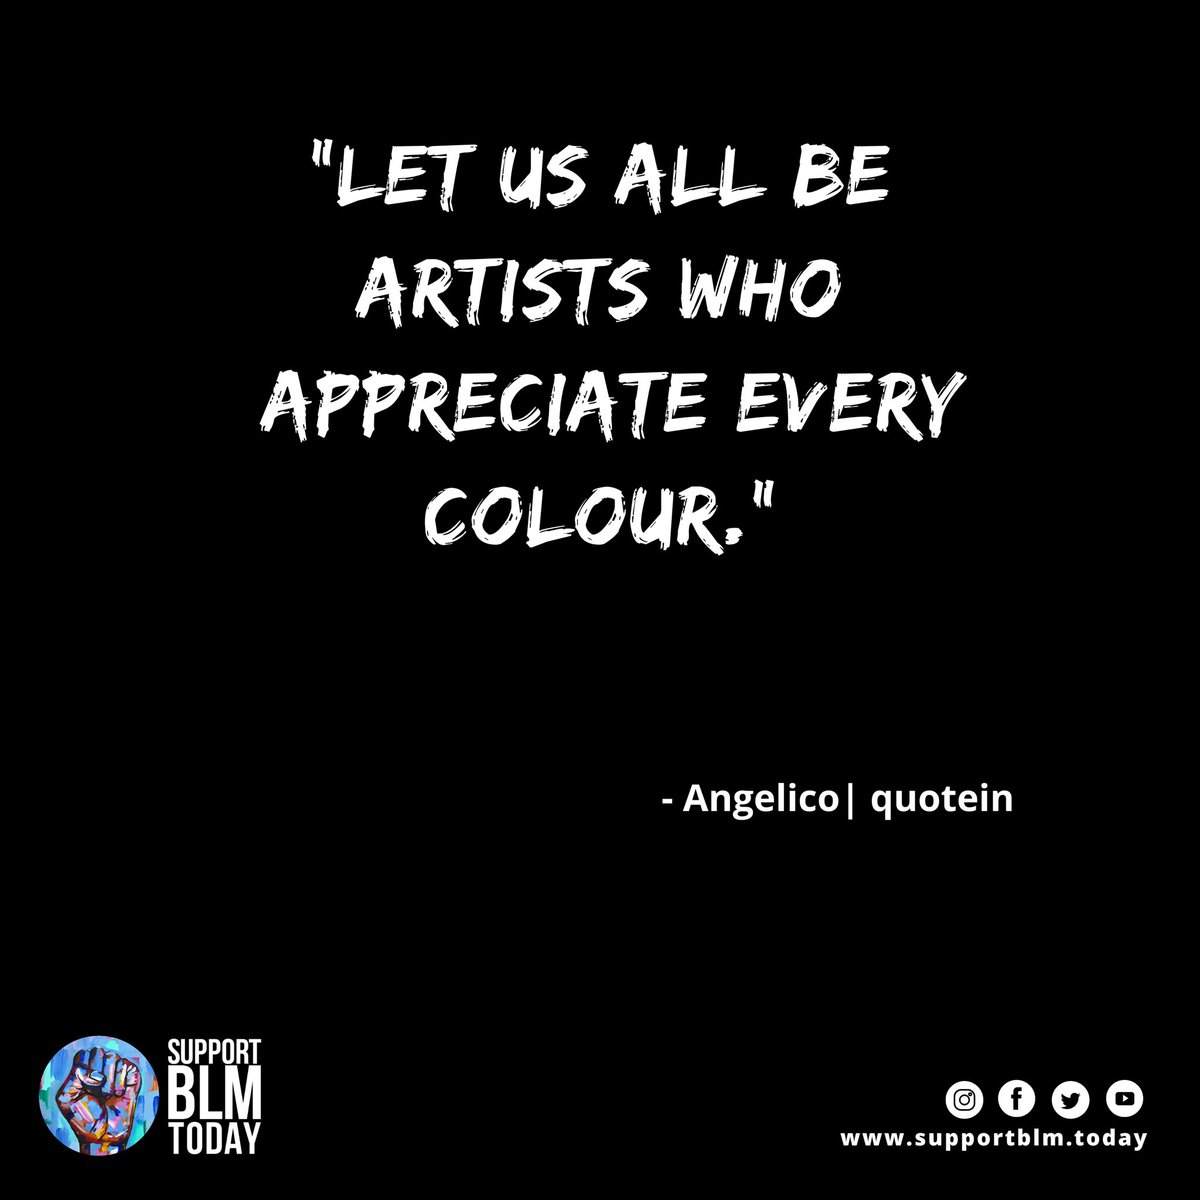 Like Artists, appreciate every color    #blacklivesmatter #blmquotes #blm #blm2021 #equality #racism #solidarity #blacklives #mlk #blmmovement #nojusticenopeace #blacklivesmatterplaza #blmprotest #blmfist